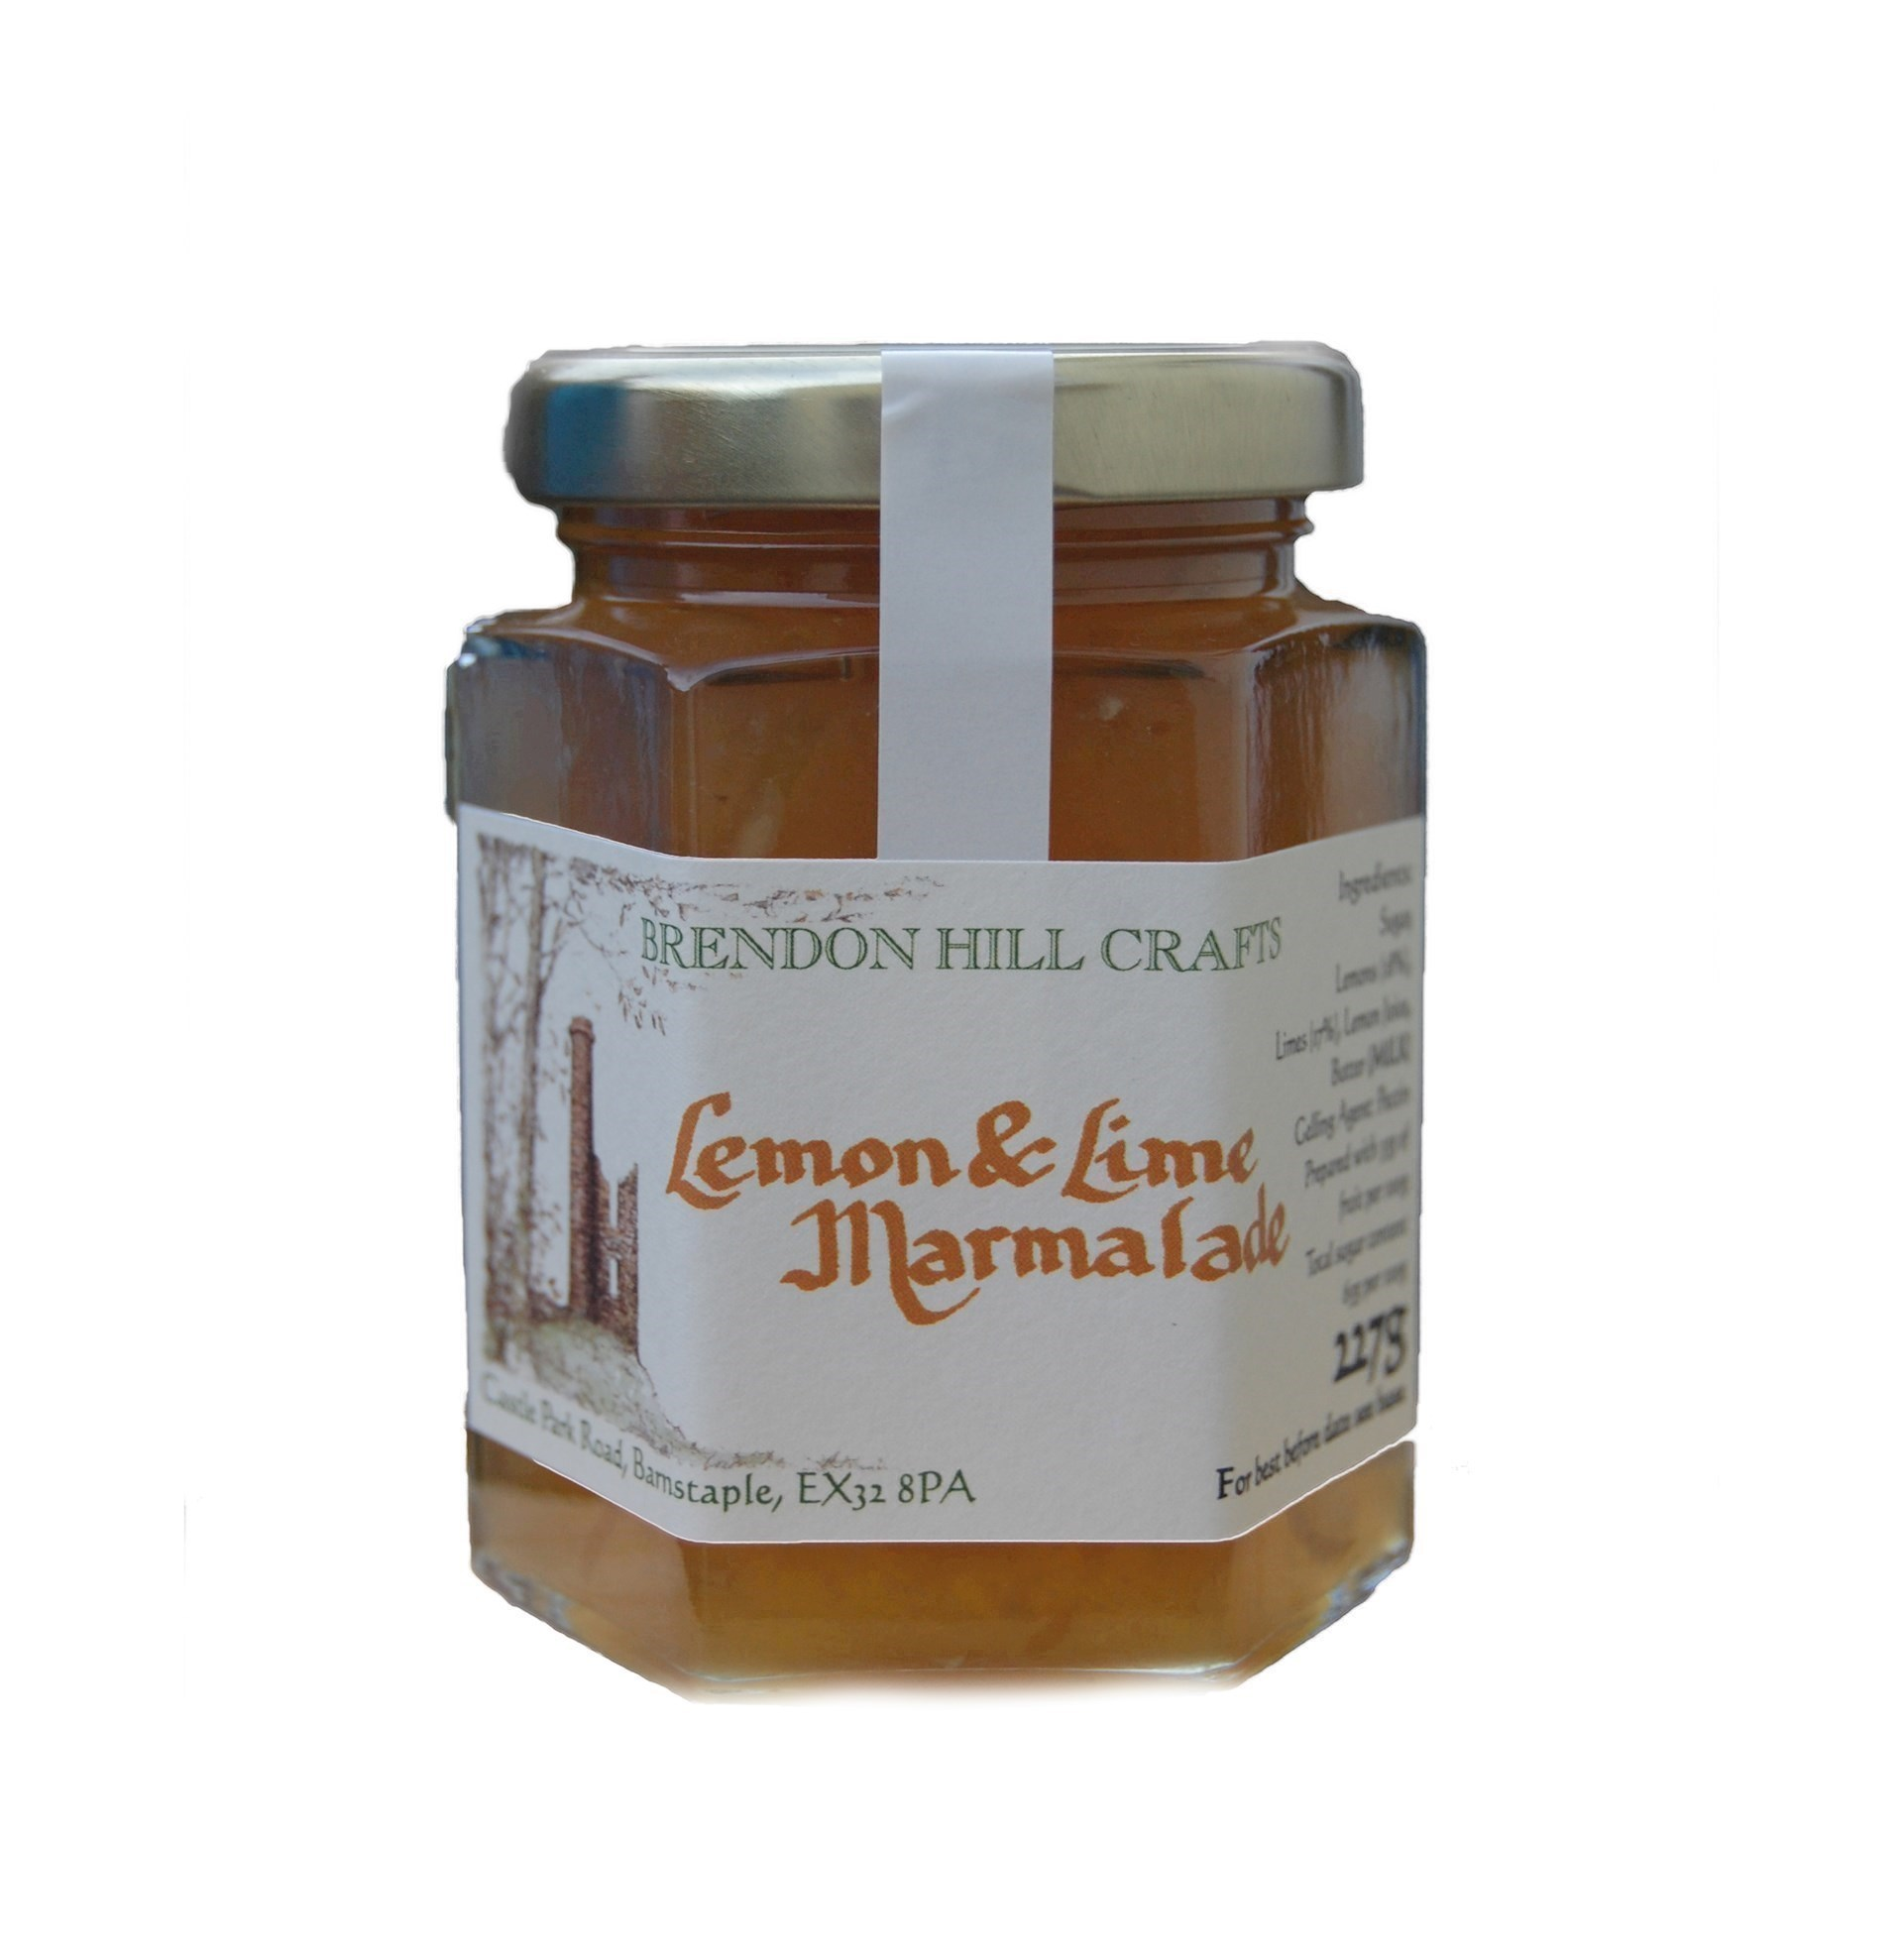 Brendon Hill Crafts Lemon & Lime Marmalade